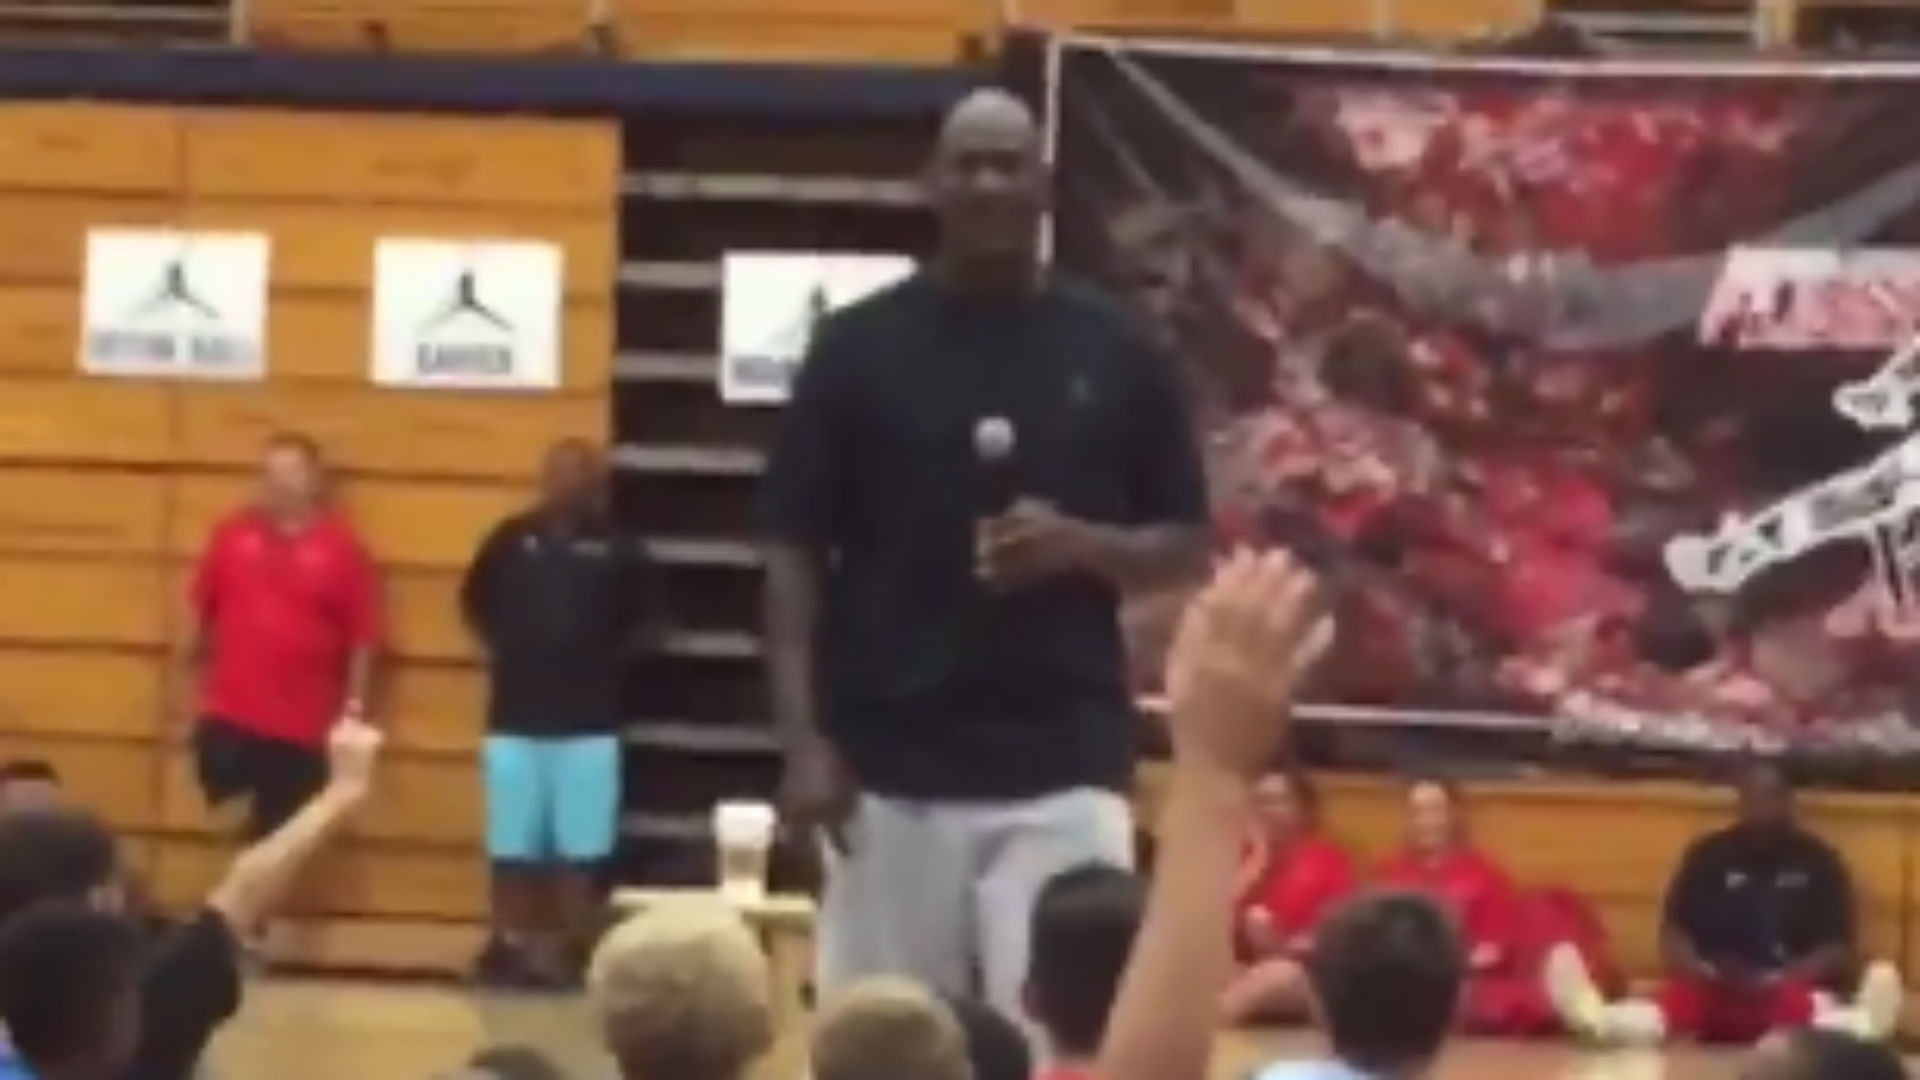 Michael Jordan embarrasses camper for asking silly meme question